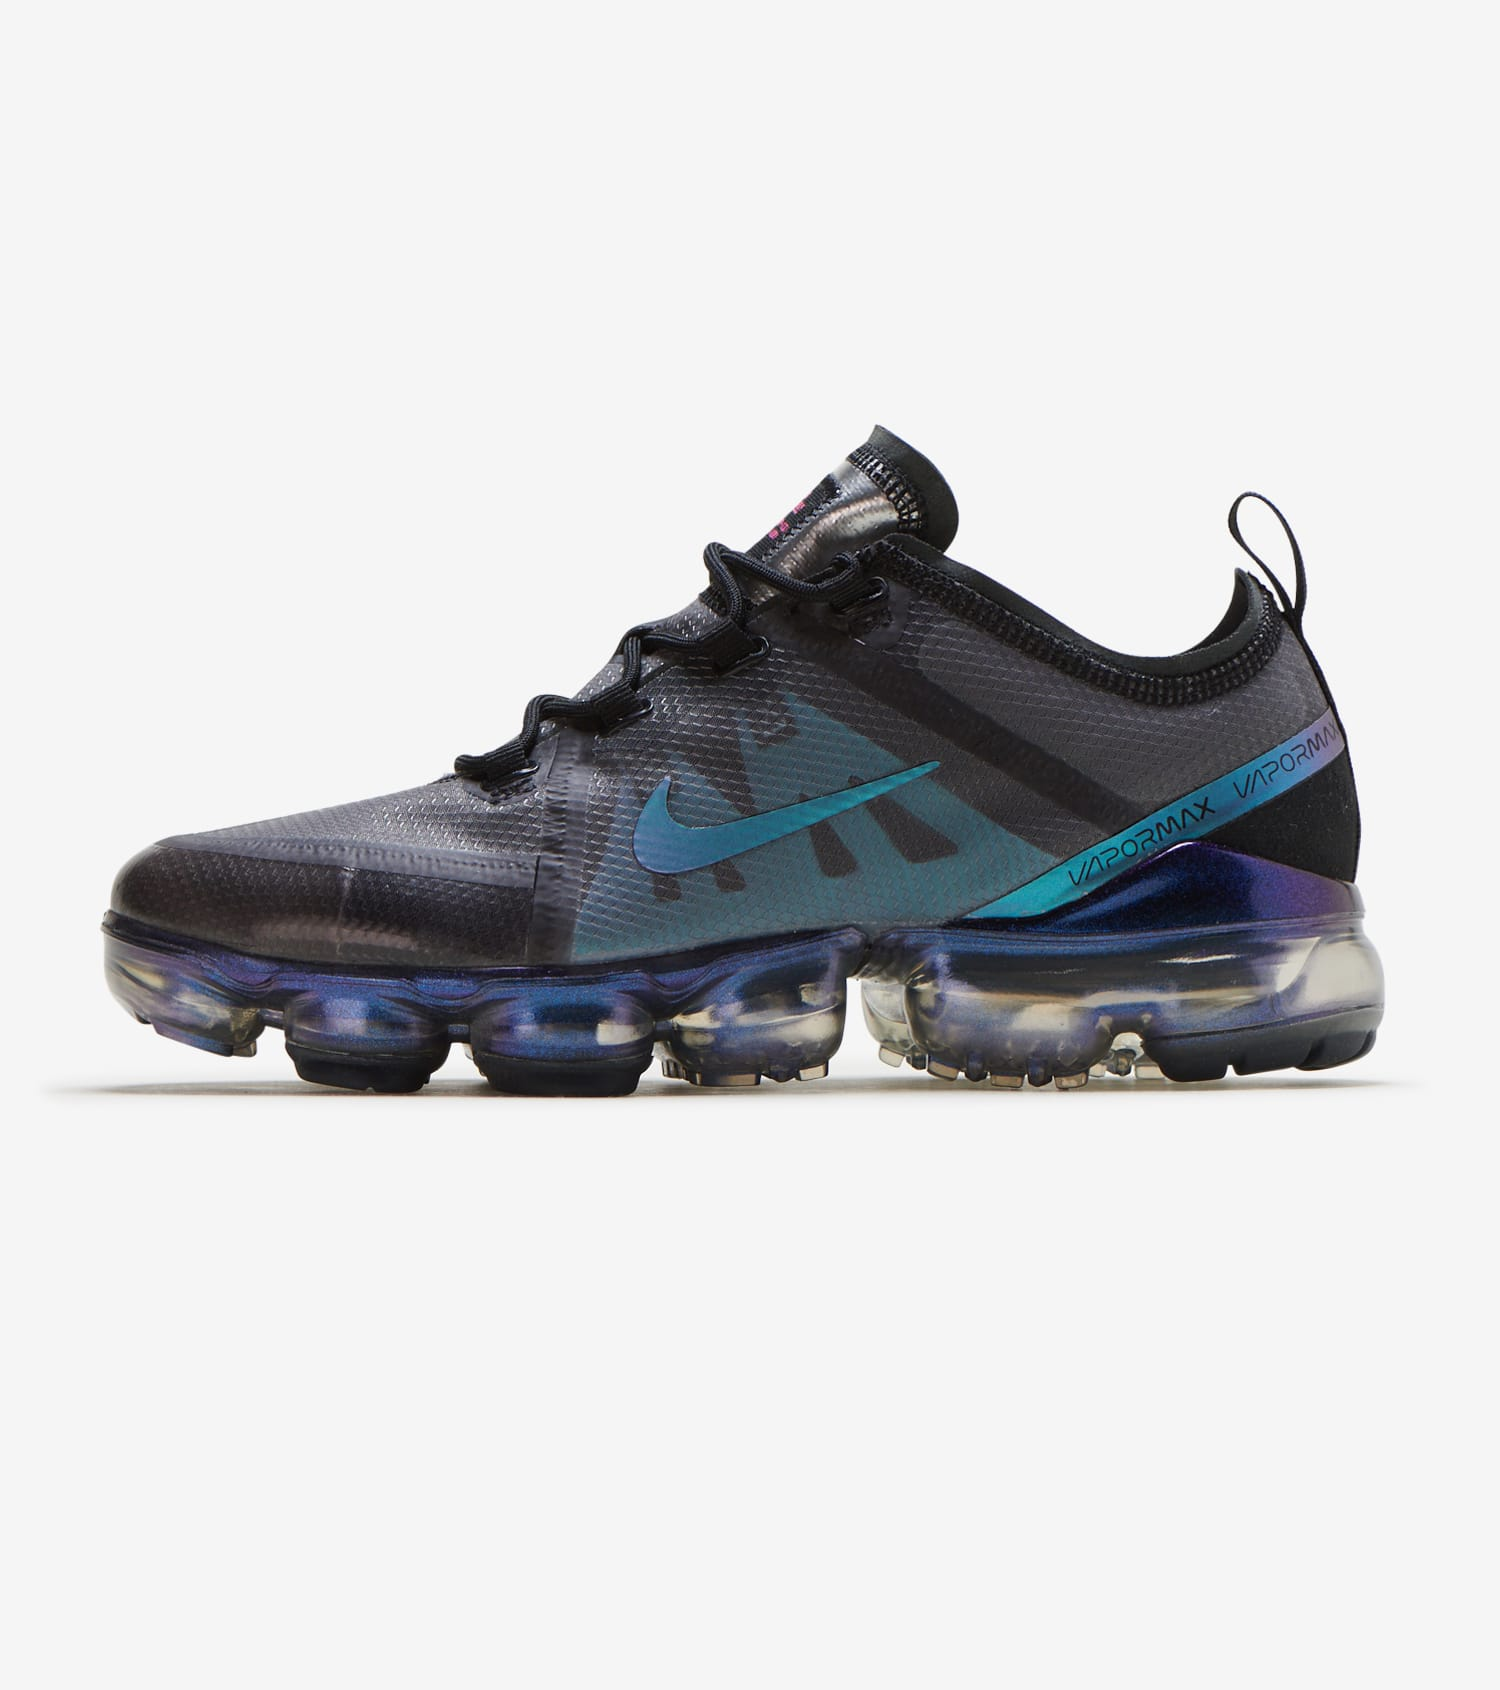 uk availability 34f82 b2de2 Air Vapormax 2019